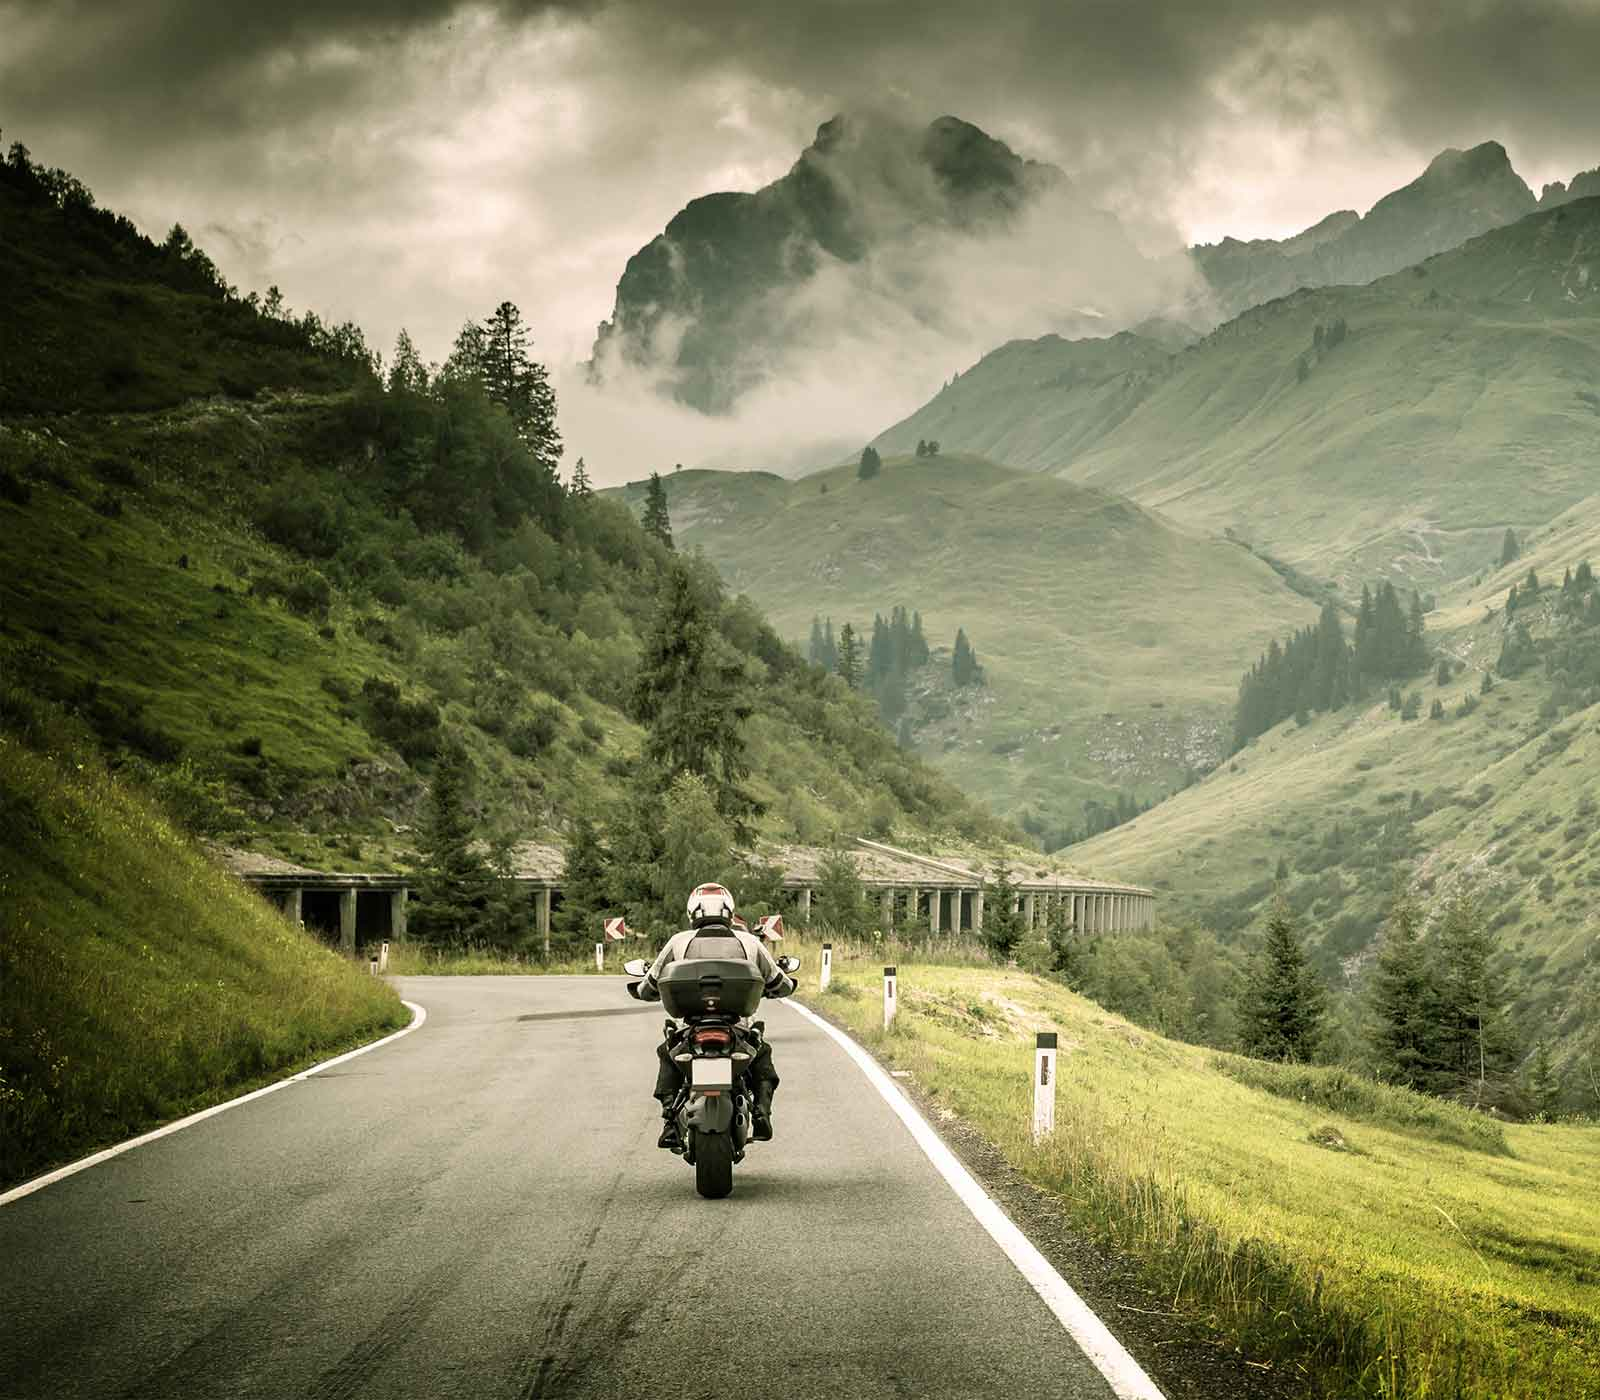 motorcycle in transit in the mountains